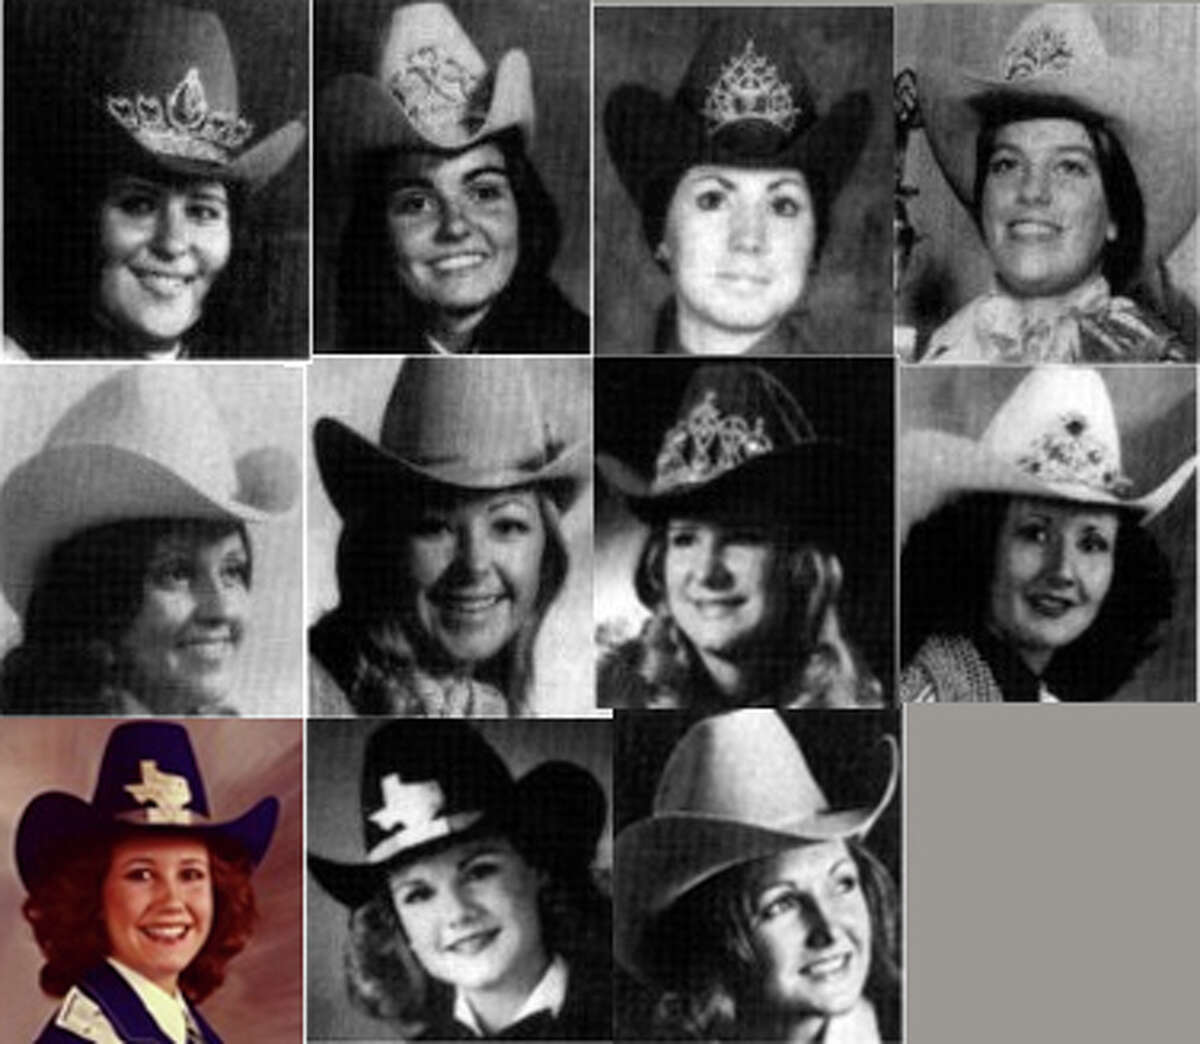 1970's Miss Rodeo Texas winners (left to right) Top row : Eunice Alexander Hammrick, 1970; Christi Eakin Massie, 1971; Debbie Carter, 1972 (deceased); Marilyn Norris, 1973Second row: Paula Davis Sweeten, 1974; Jackie Bob Riggs Cox, 1975; Glena Chapman Rutkowski, 1976; Terri Eddington Duke, 1977 (Miss Rodeo America)Bottom row: Kim Henderson Cooper, 1978; Carole Spurlock Dickey, 1979; Debbie Johnson Garrison, 1979 (Miss Rodeo America)